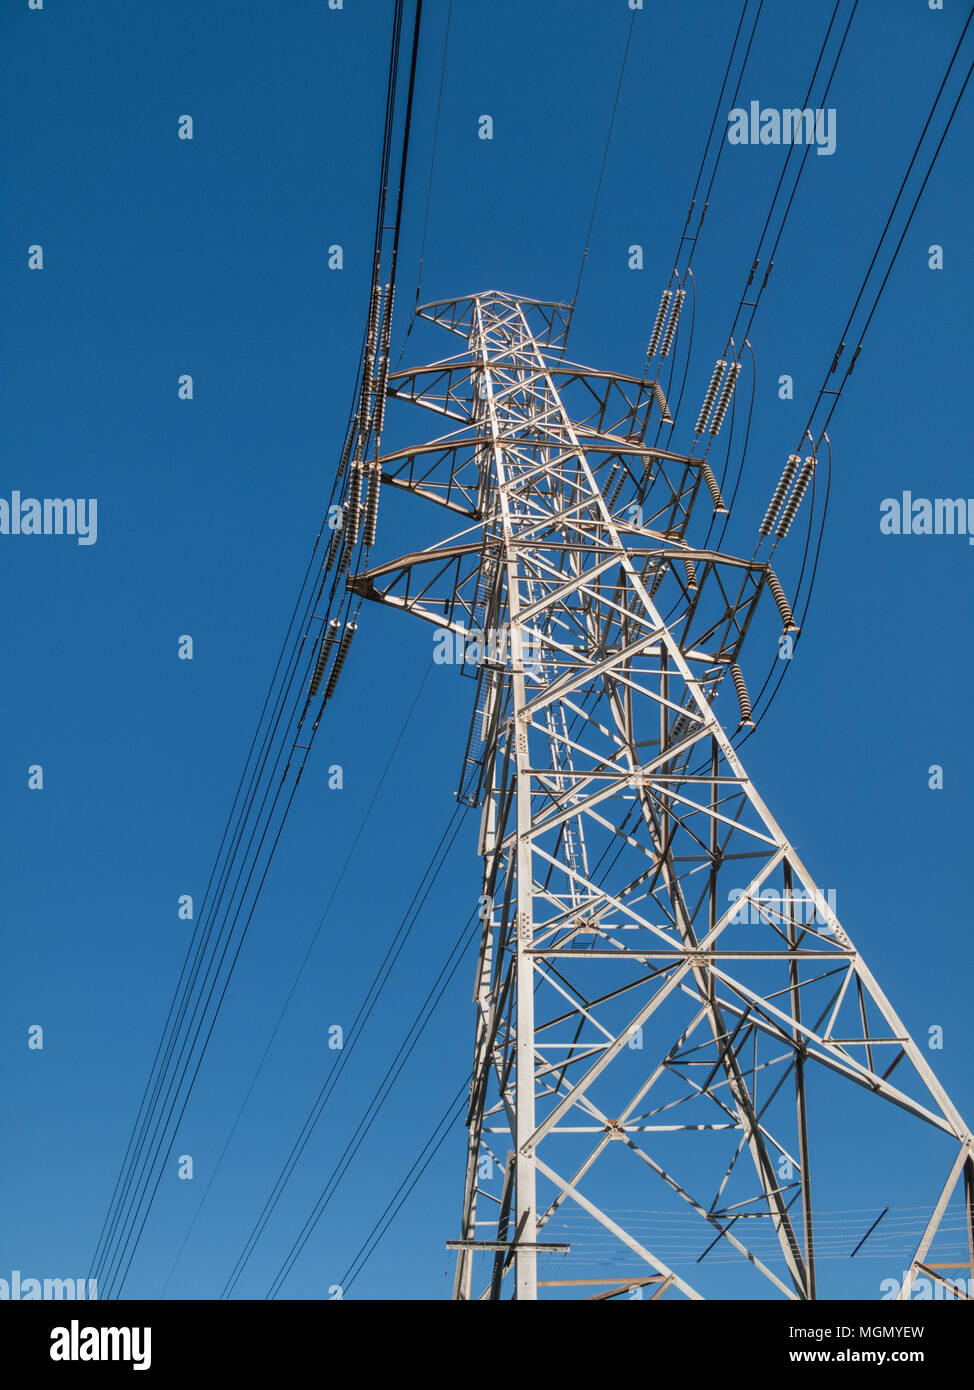 Electricity transmission pylon - Stock Image